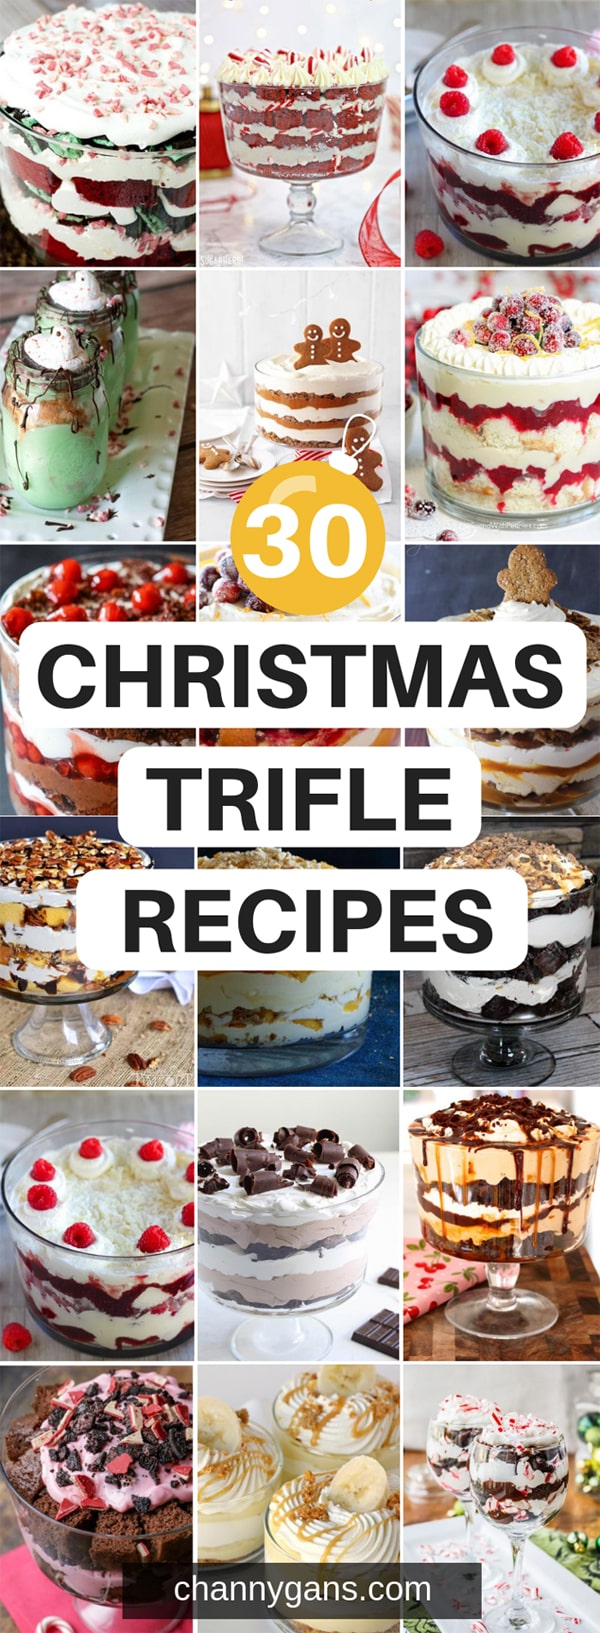 30 Christmas Trifle Recipes